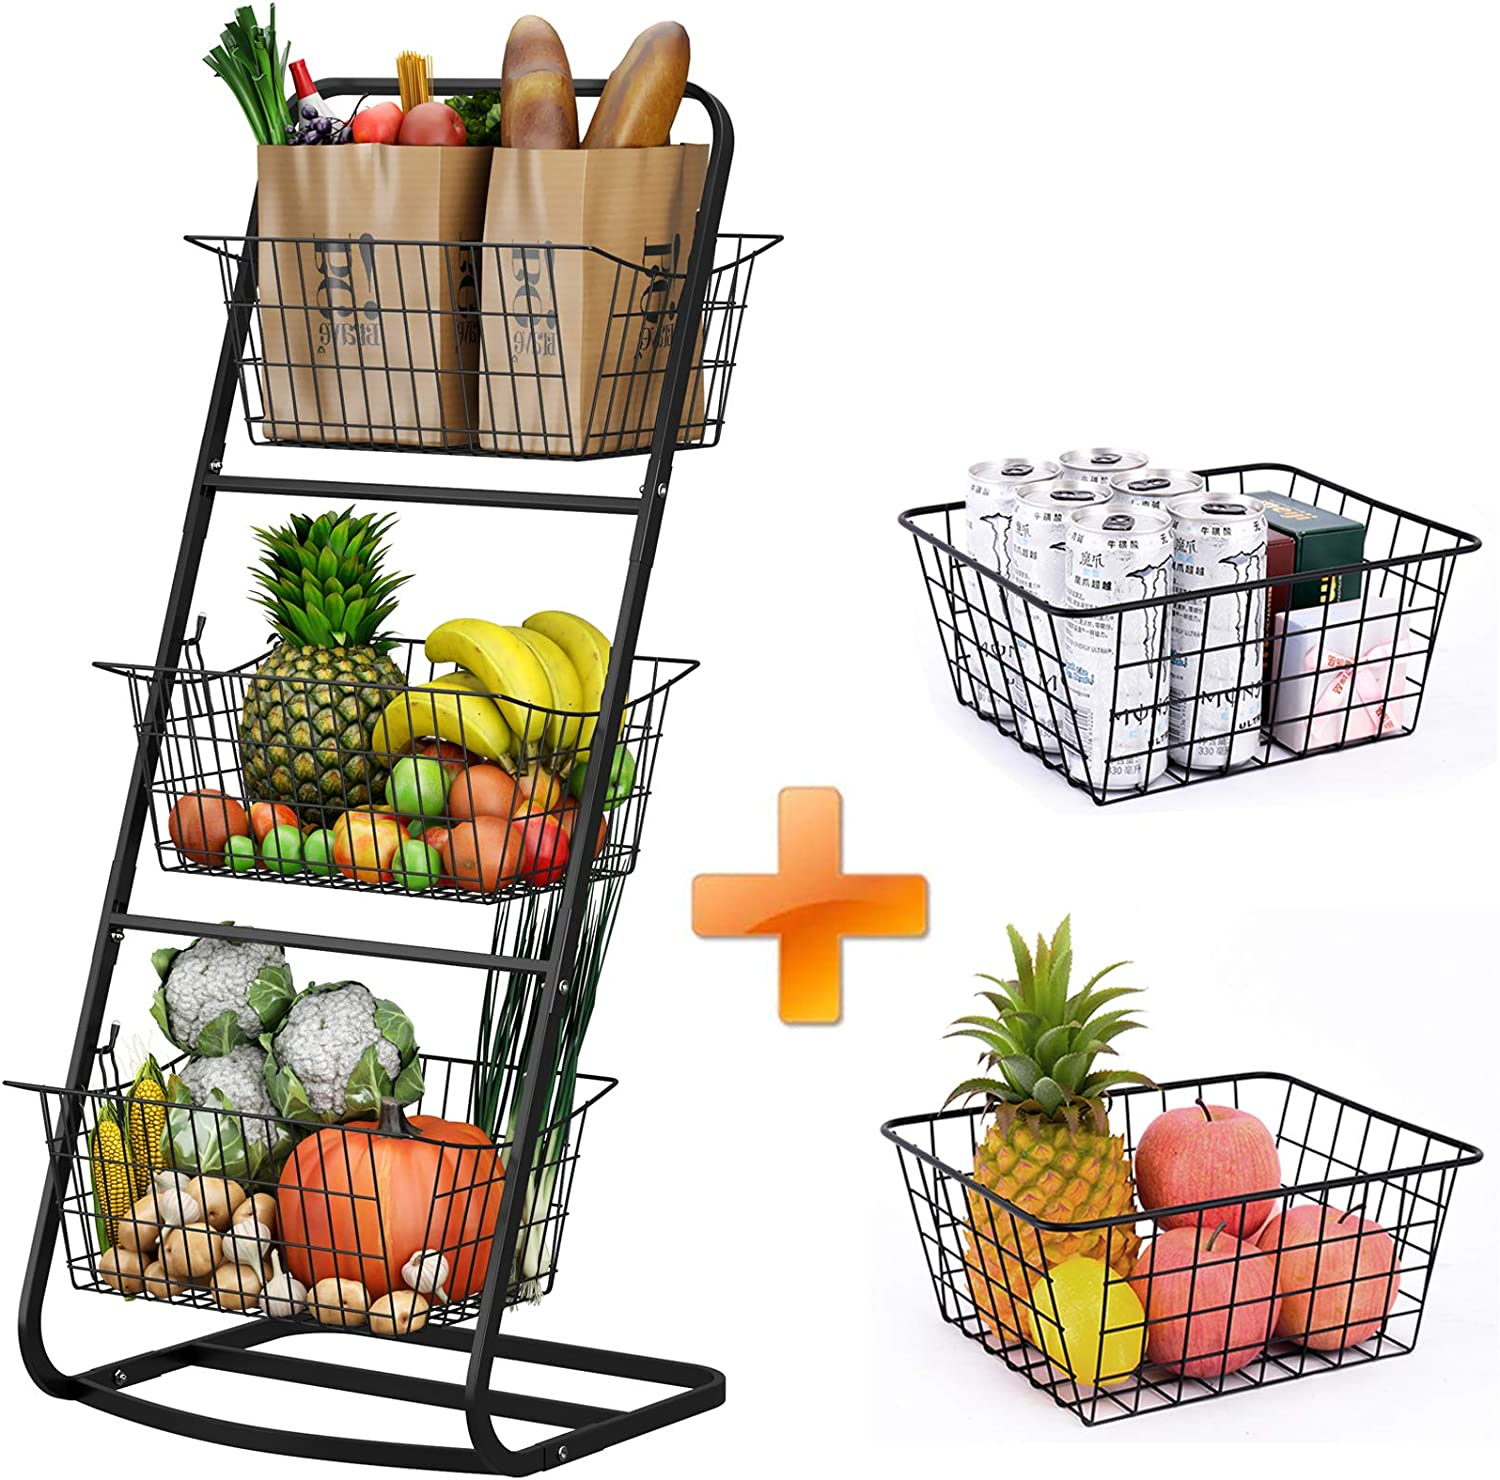 3 Tier Market Basket with 2 Wire Storage Baskets, HOWDIA Basket Fruit Stand for Kitchen, Pantry, Shelf, Laundry, Cabinets, Garage (3 Tier Basket and 2 Wire Basket)